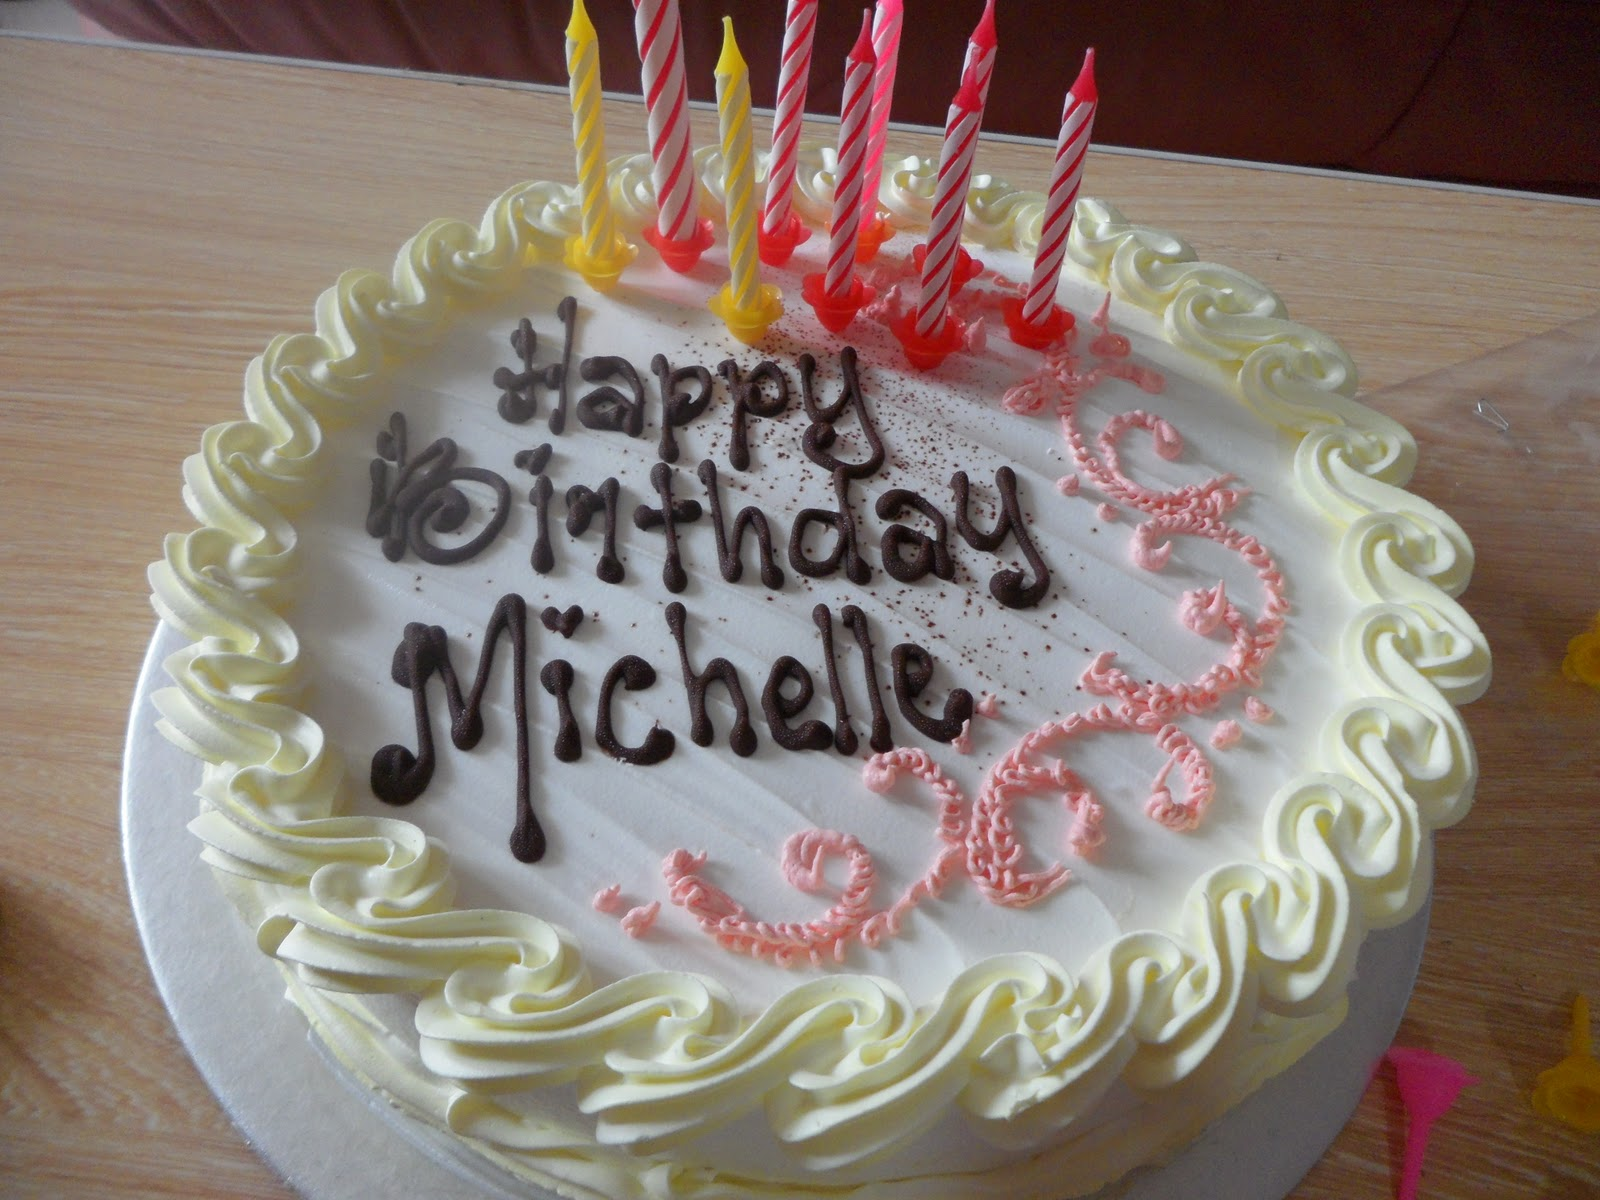 Image Gallery happy birthday michelle cake